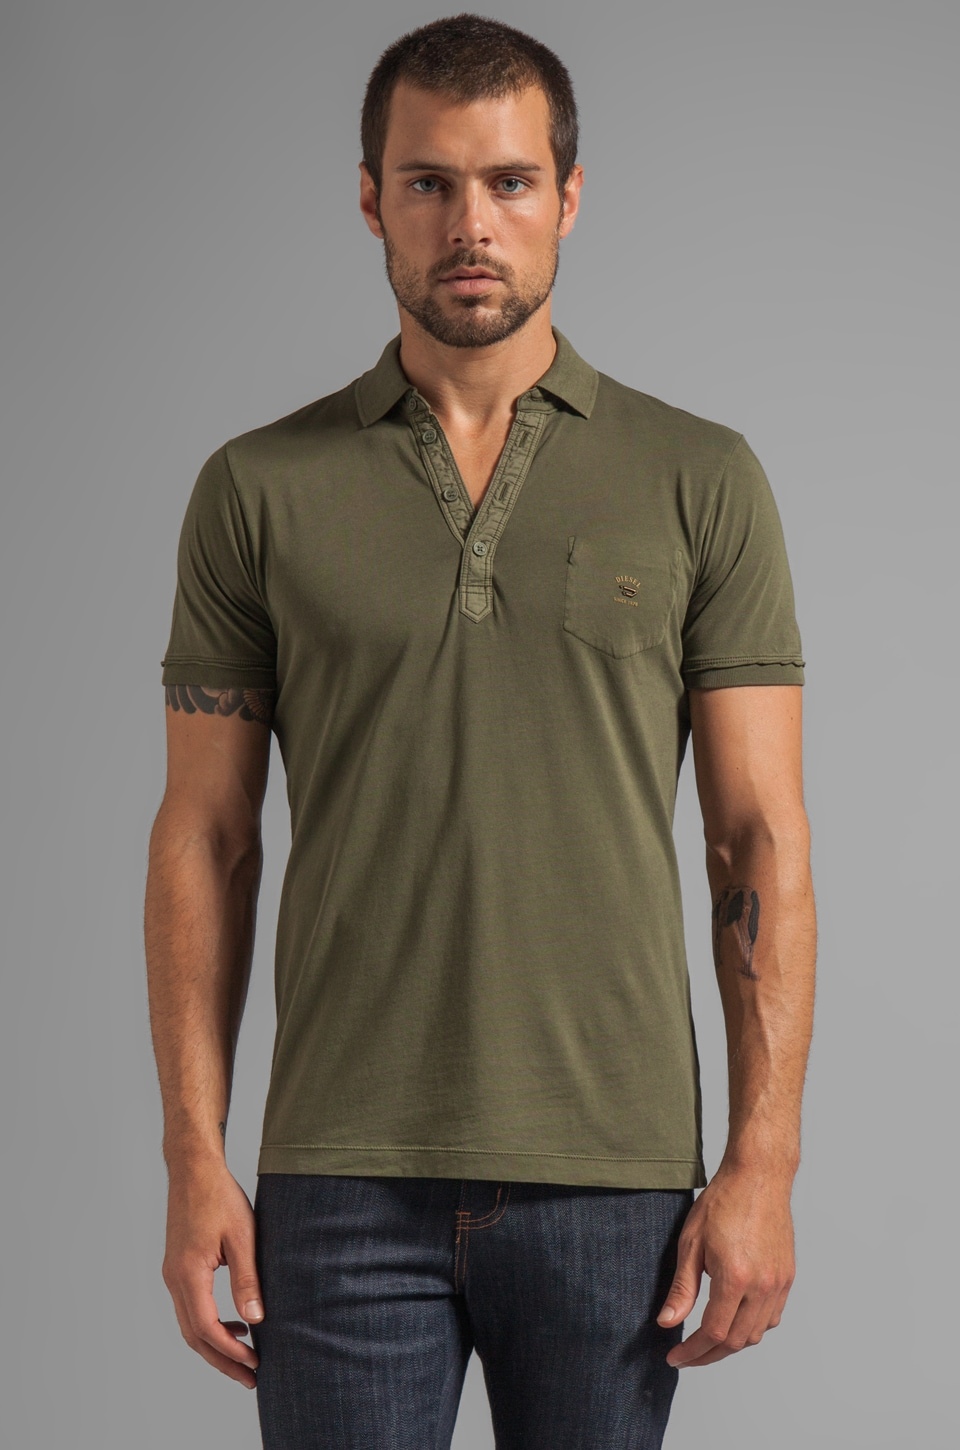 Diesel Erinni Tee in Gingham Green